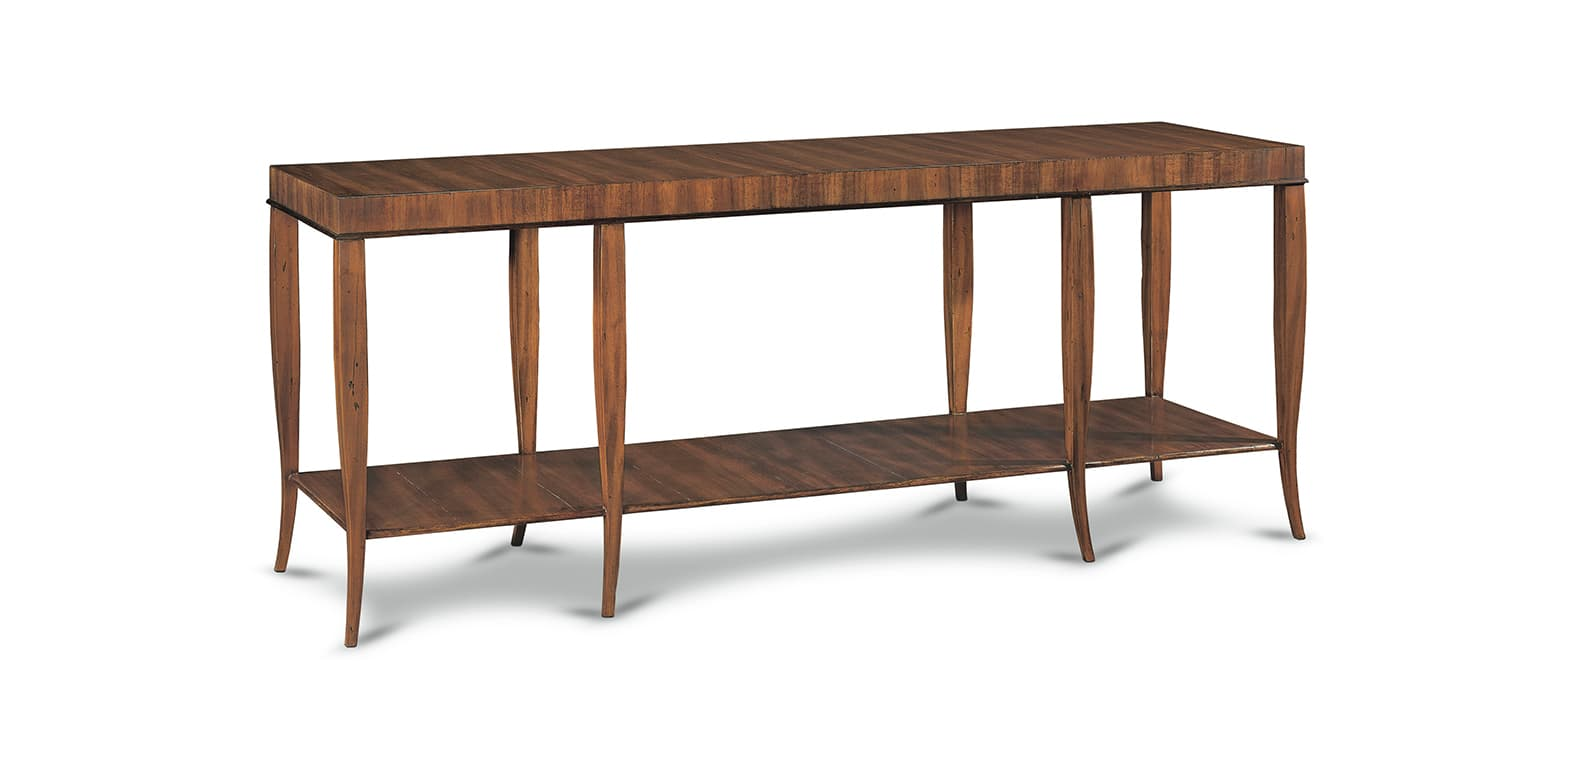 LORIENT SOFA TABLE